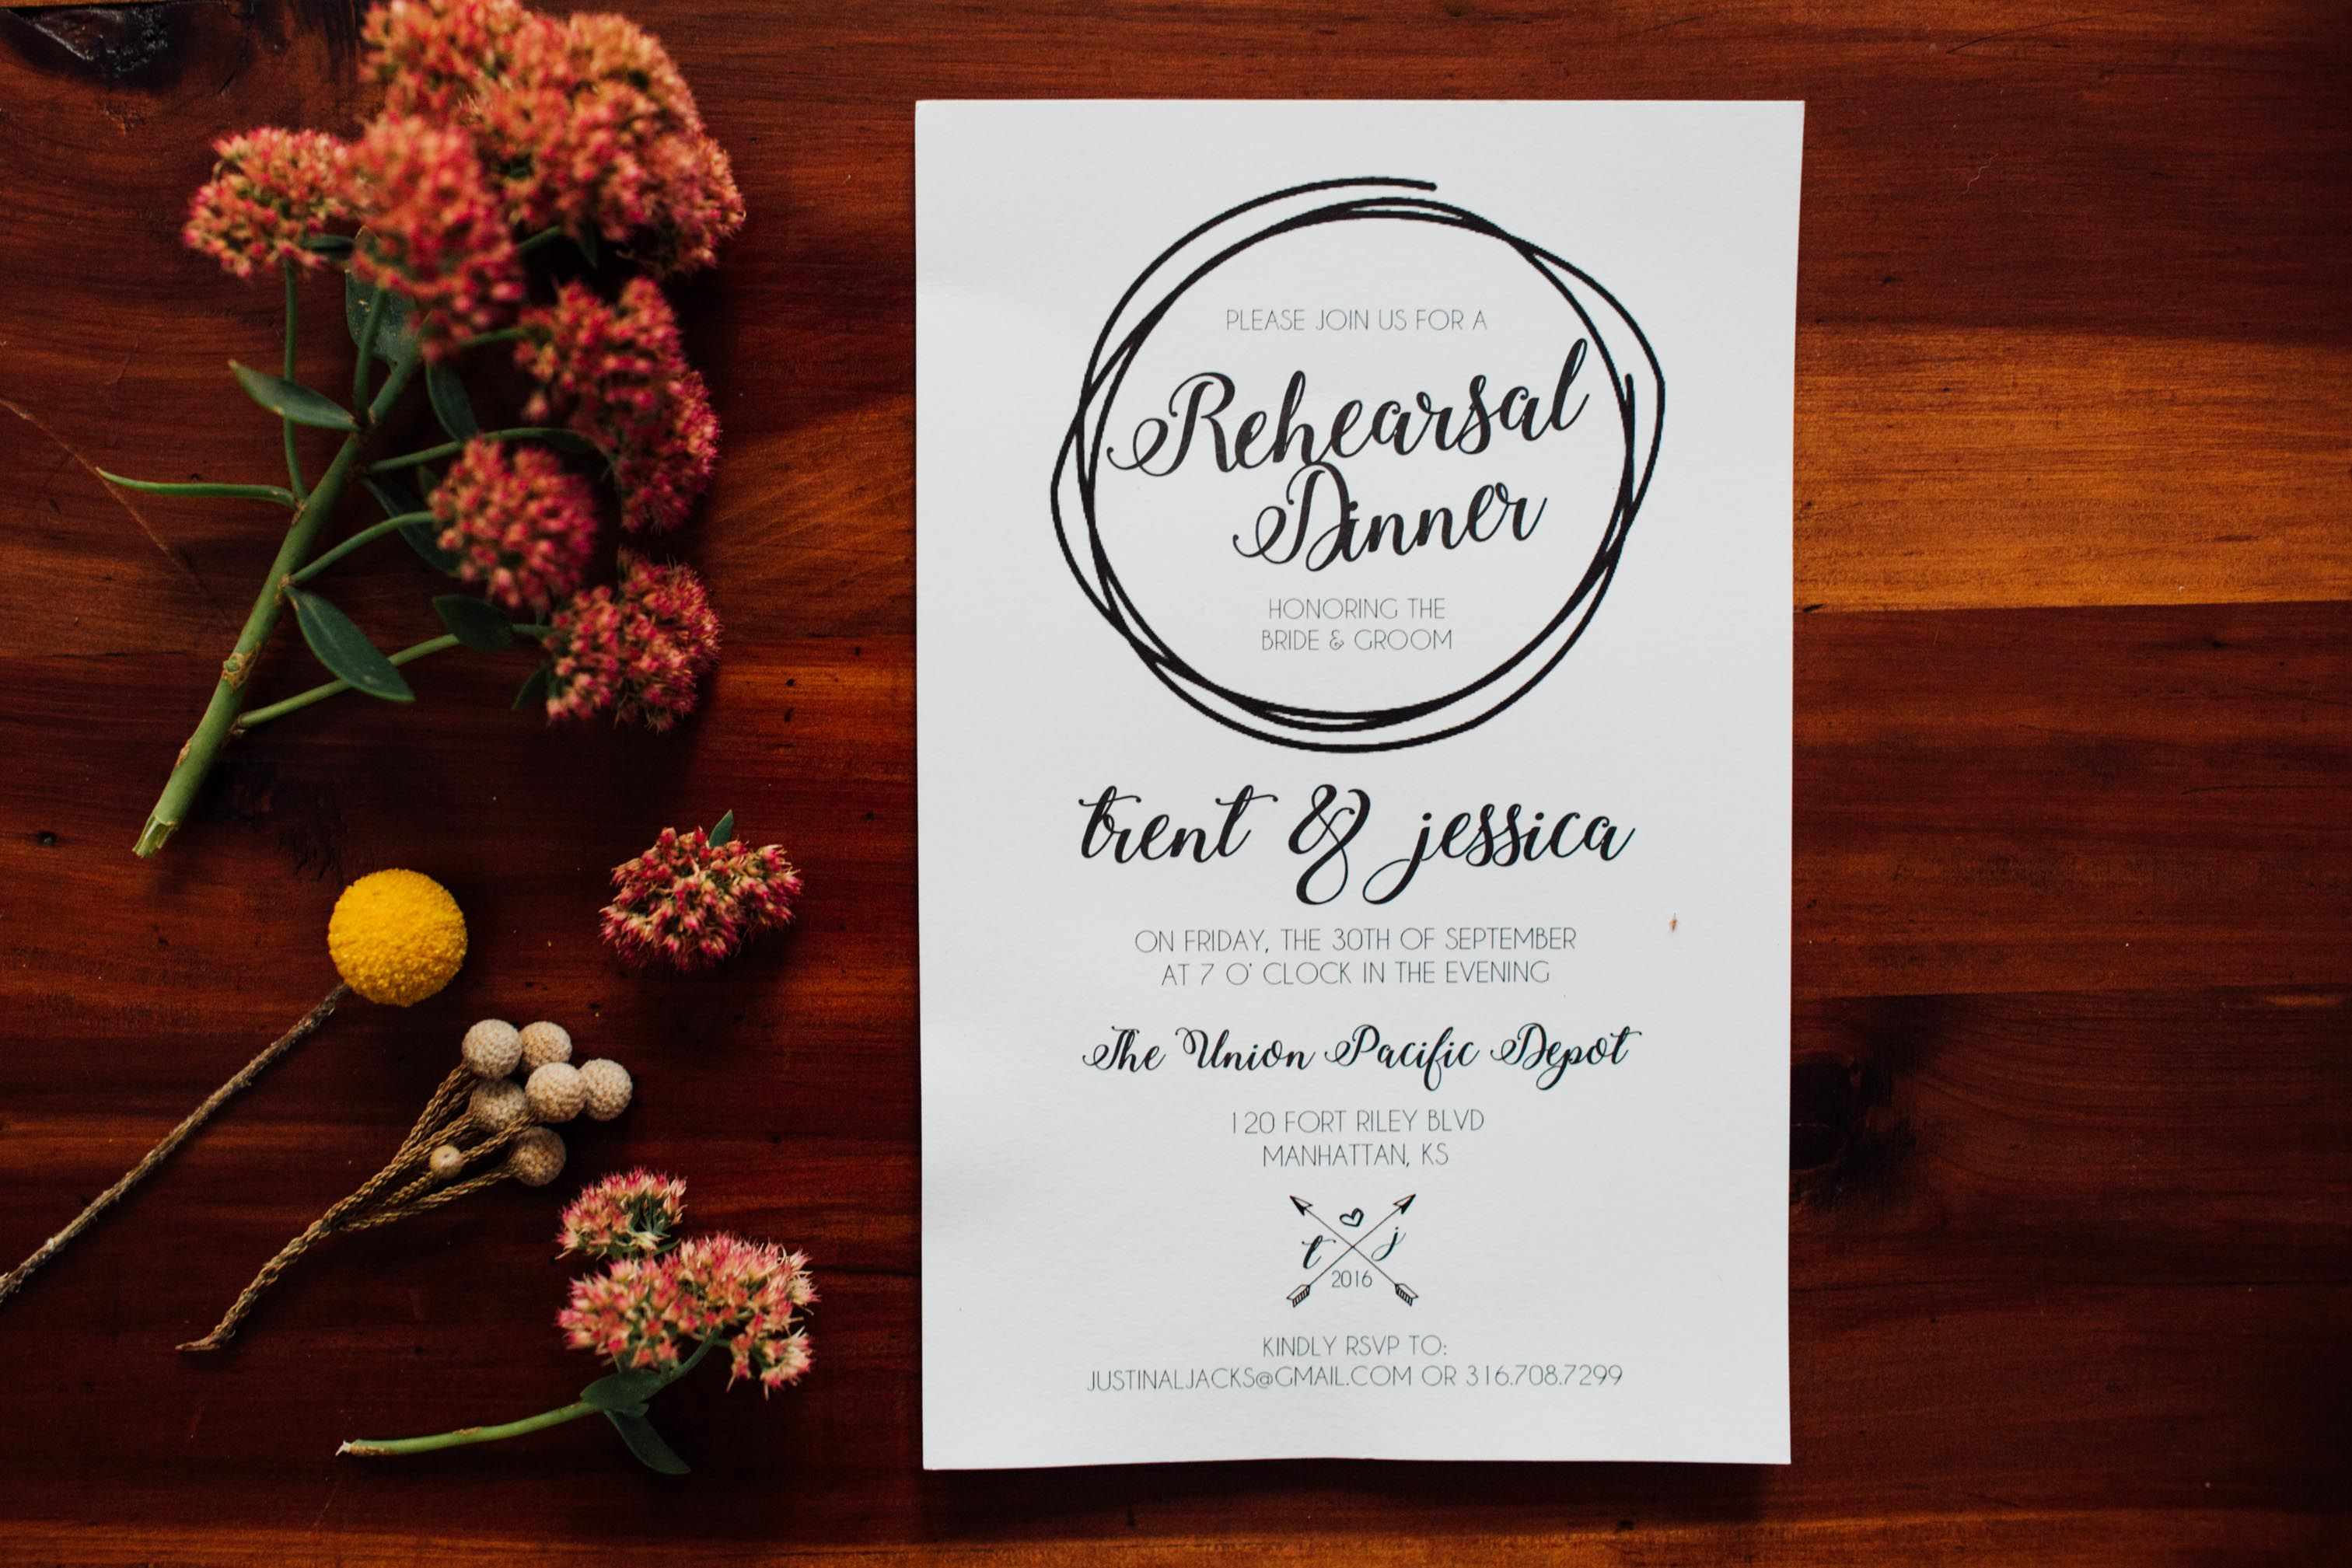 Rehearsal Dinner invitation Photo by Emma York